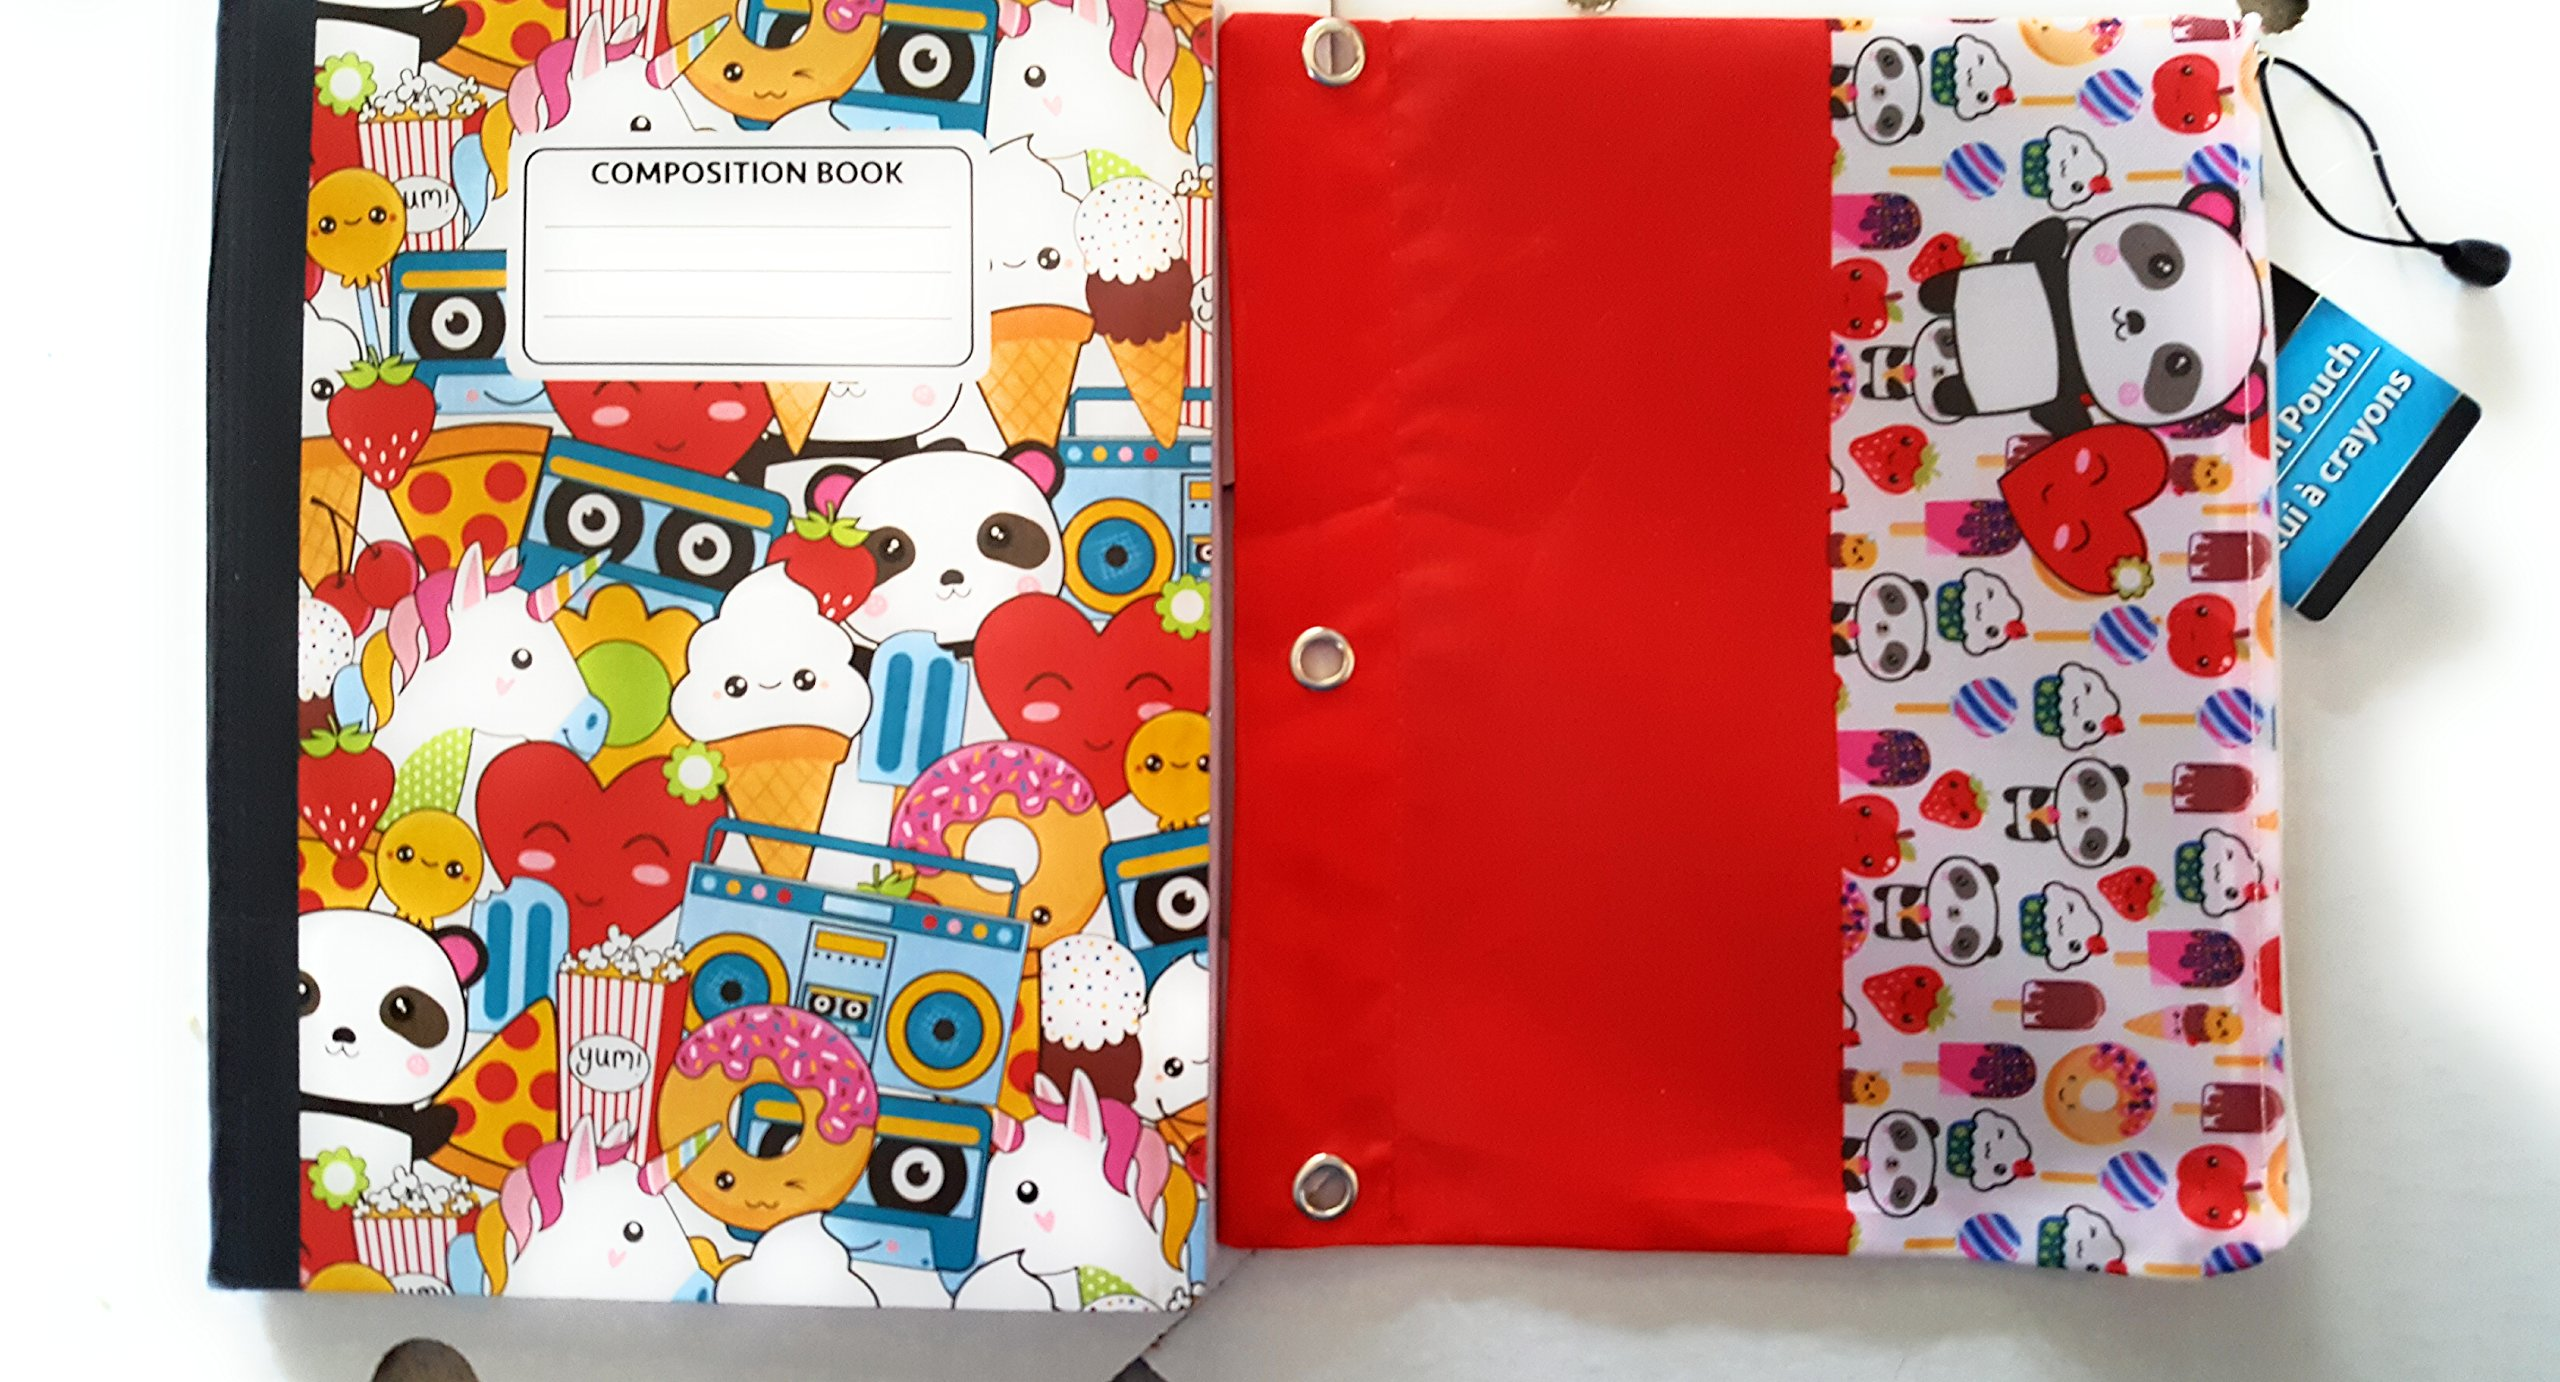 Jot Wide Ruled 100 pg Composition Notebooks Primary Colors Set of 4.